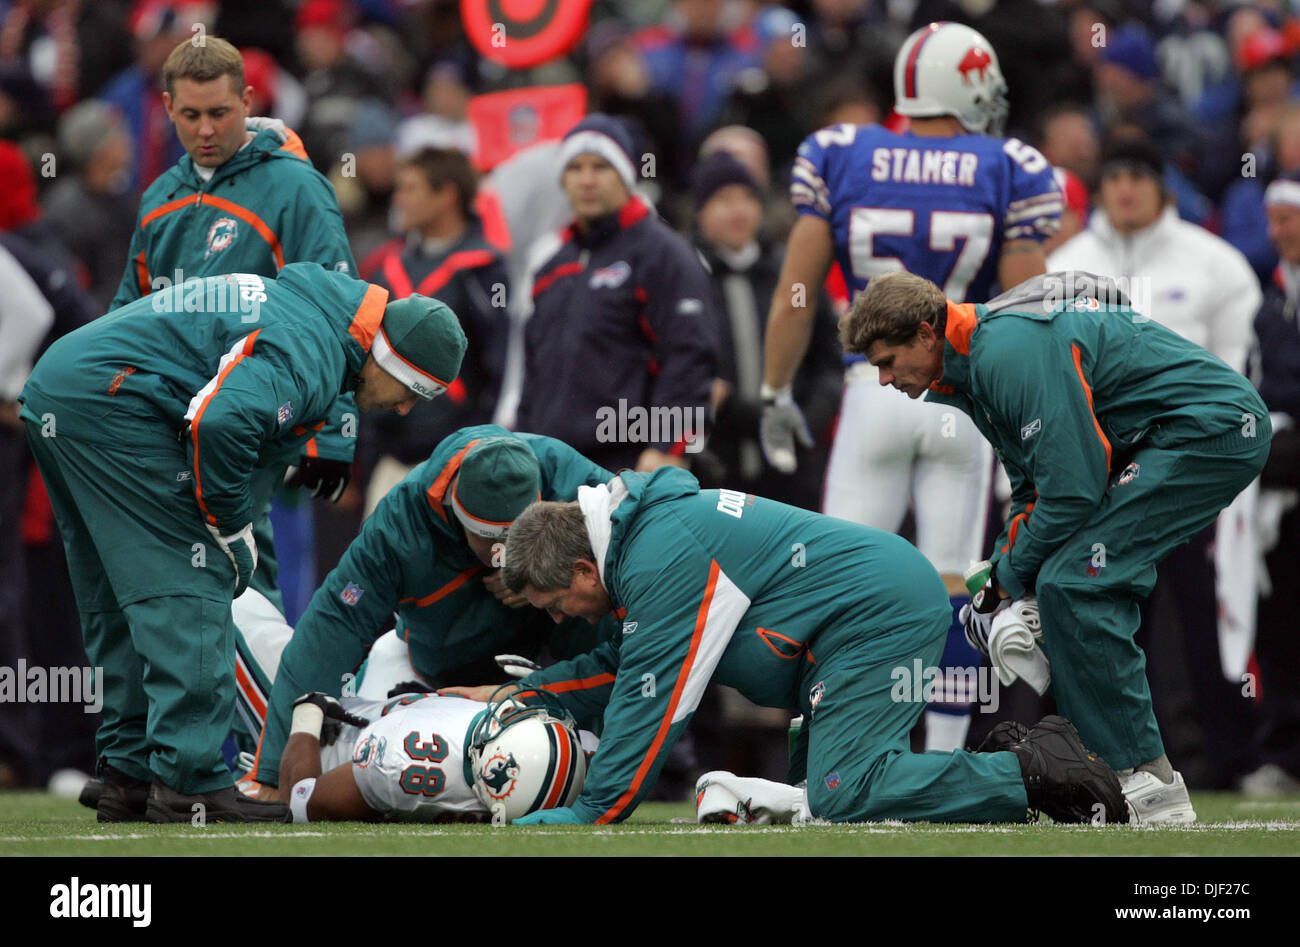 Dec 09, 2007 - Buffalo, New York, USA - Dolphins running back PATRICK COBBS was injured on a special teams play Stock Photo